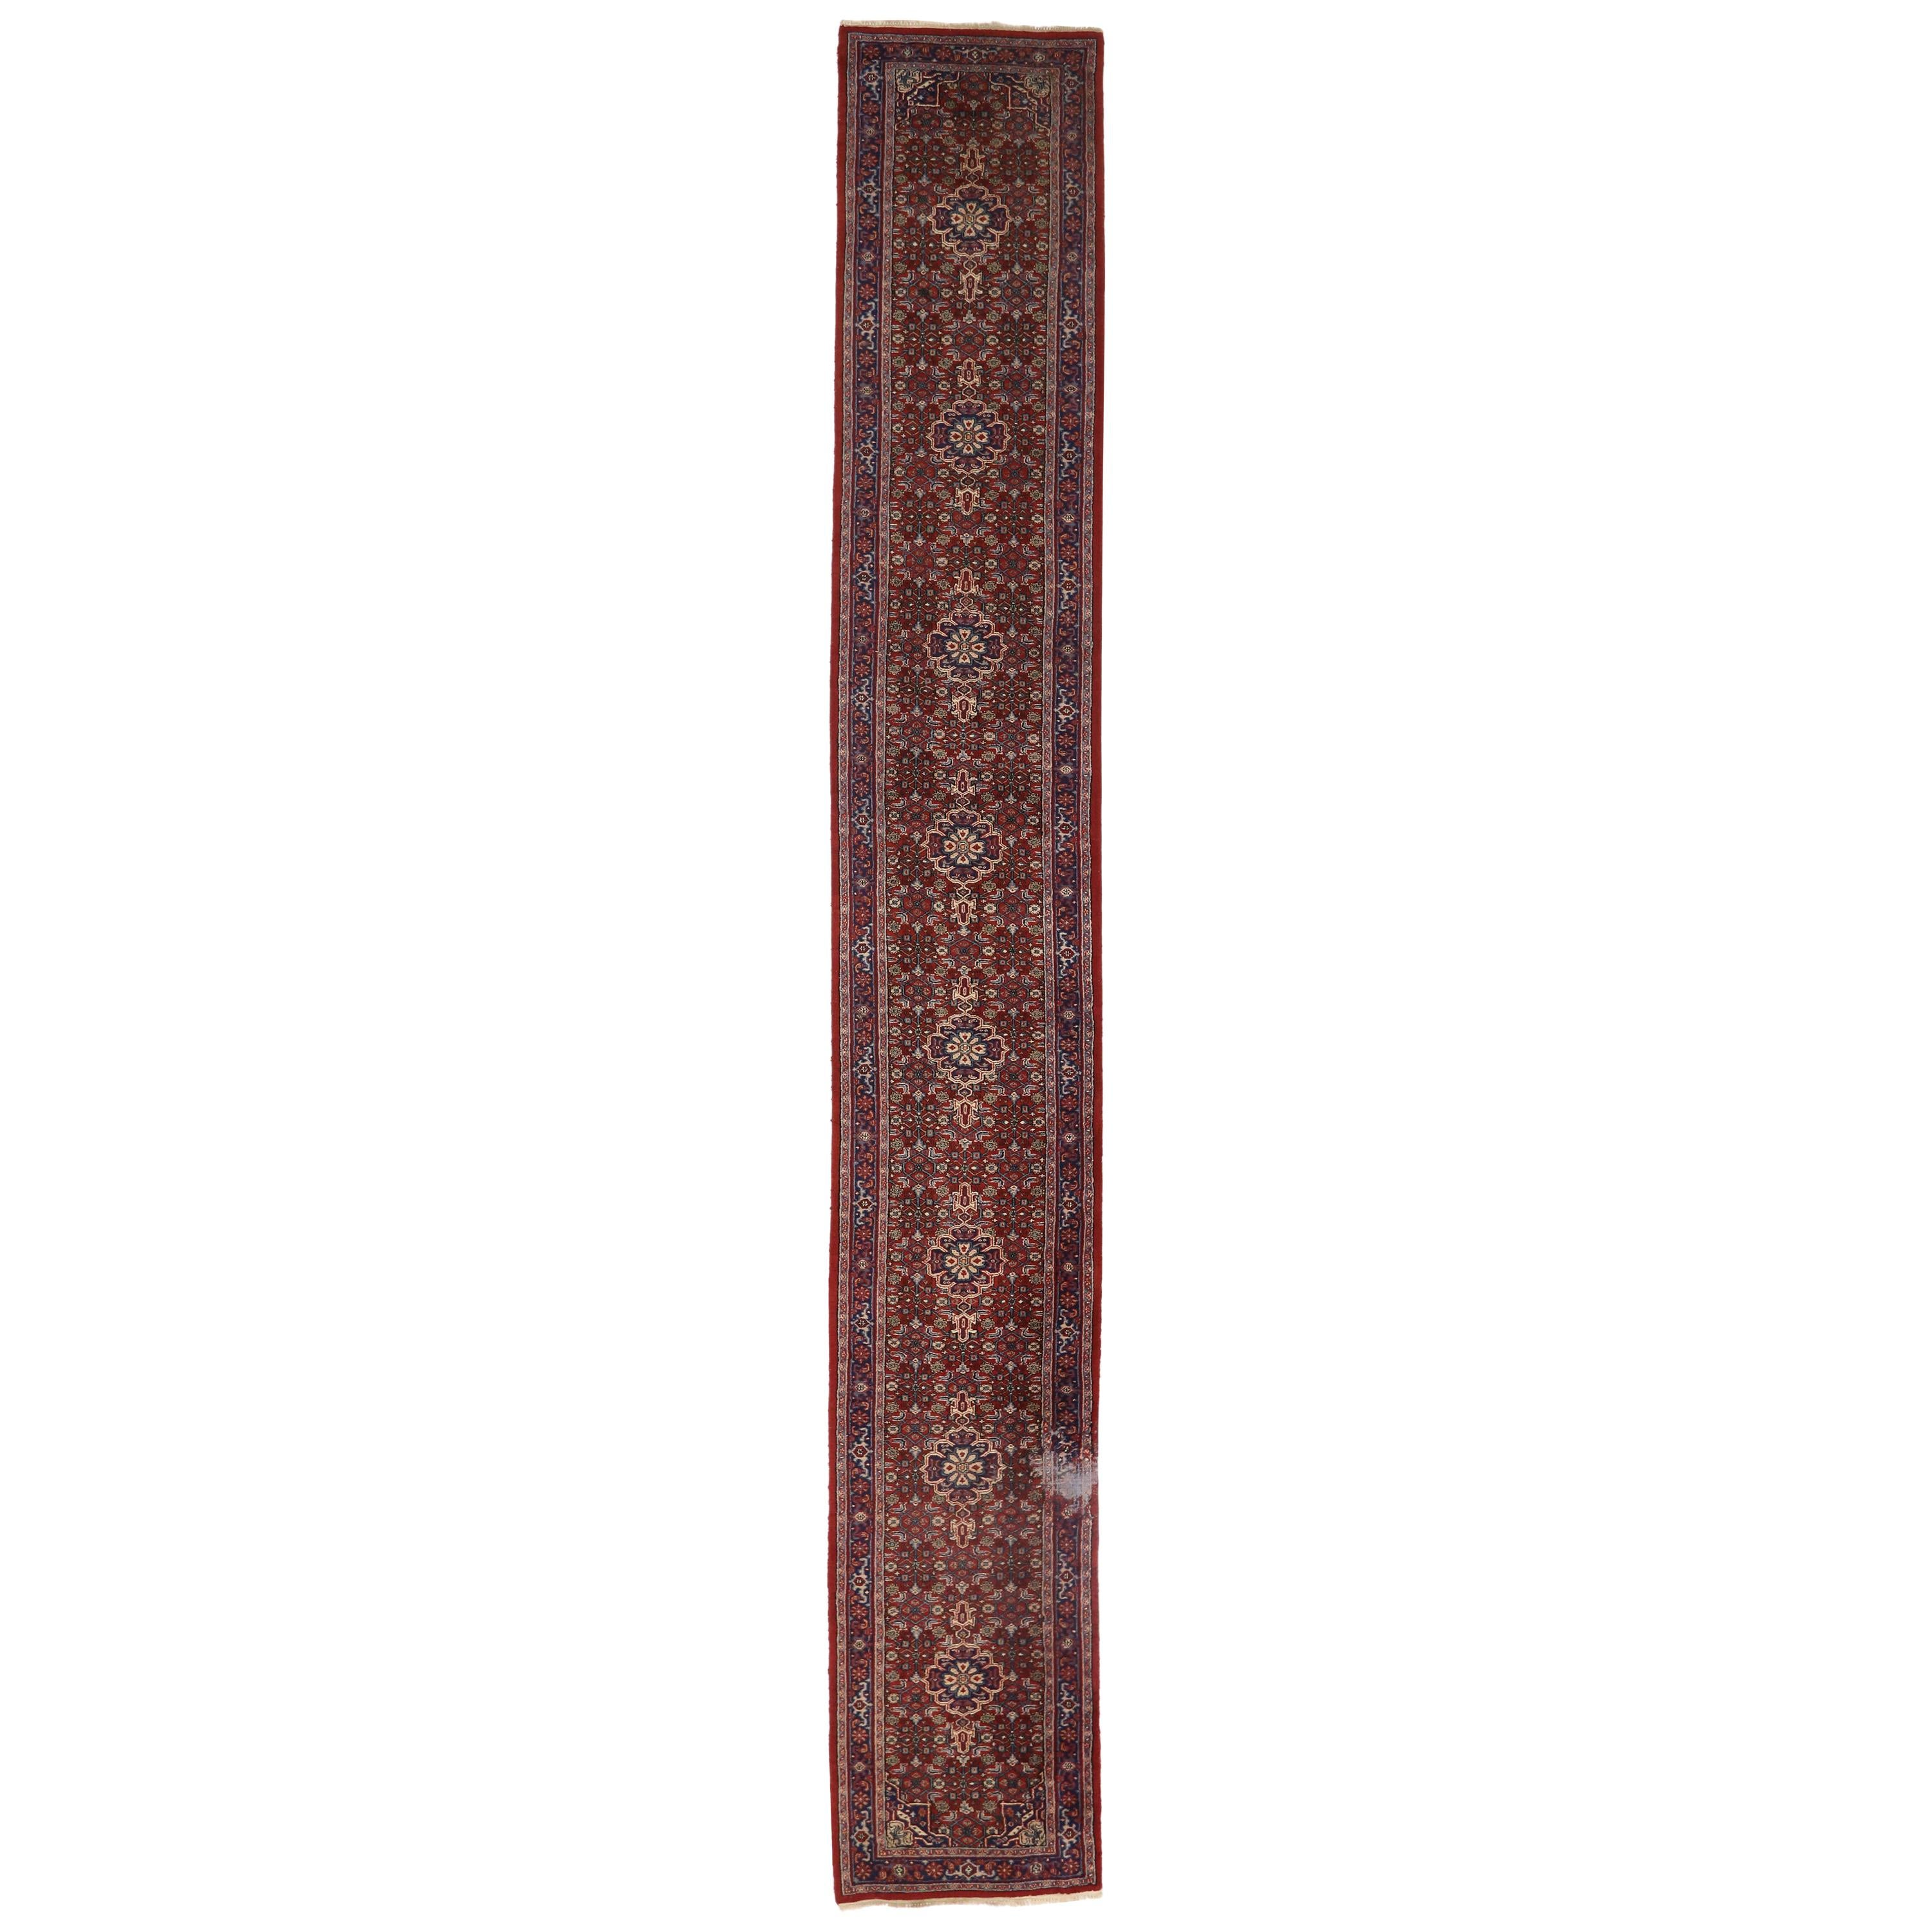 Antique Indo-Persian Bijar Style Runner with Victorian Style, Hallway Runner